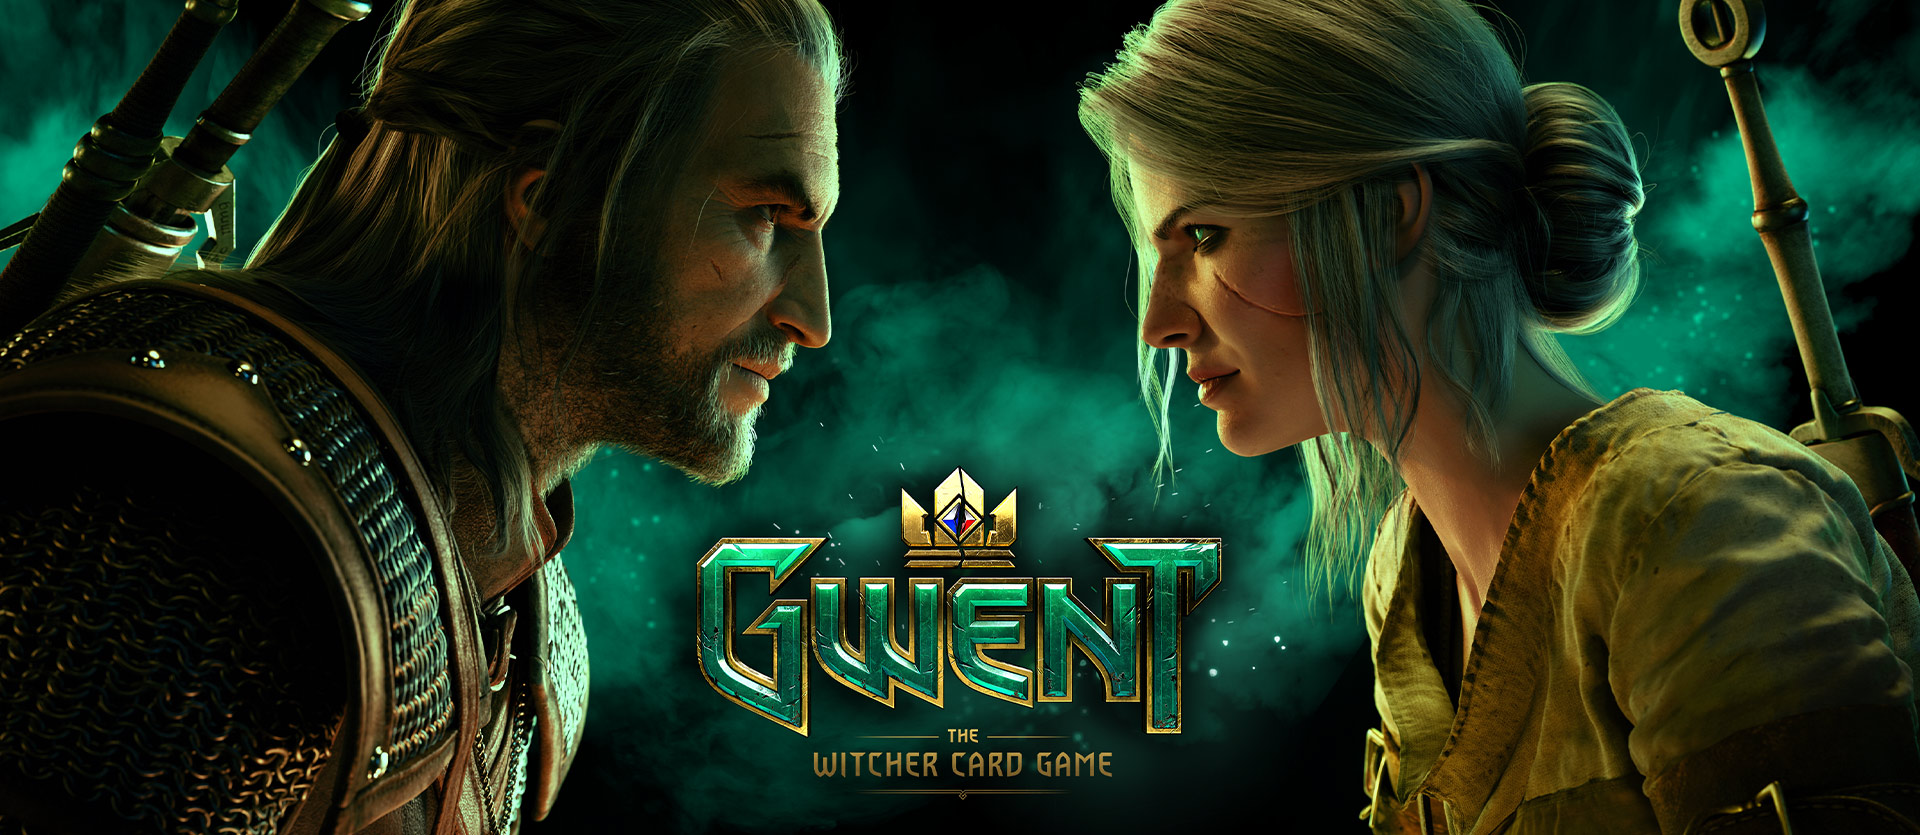 Gwent the Witcher Card Game, Vista de perfil de Geralt e Ciri a enfrentarem-se